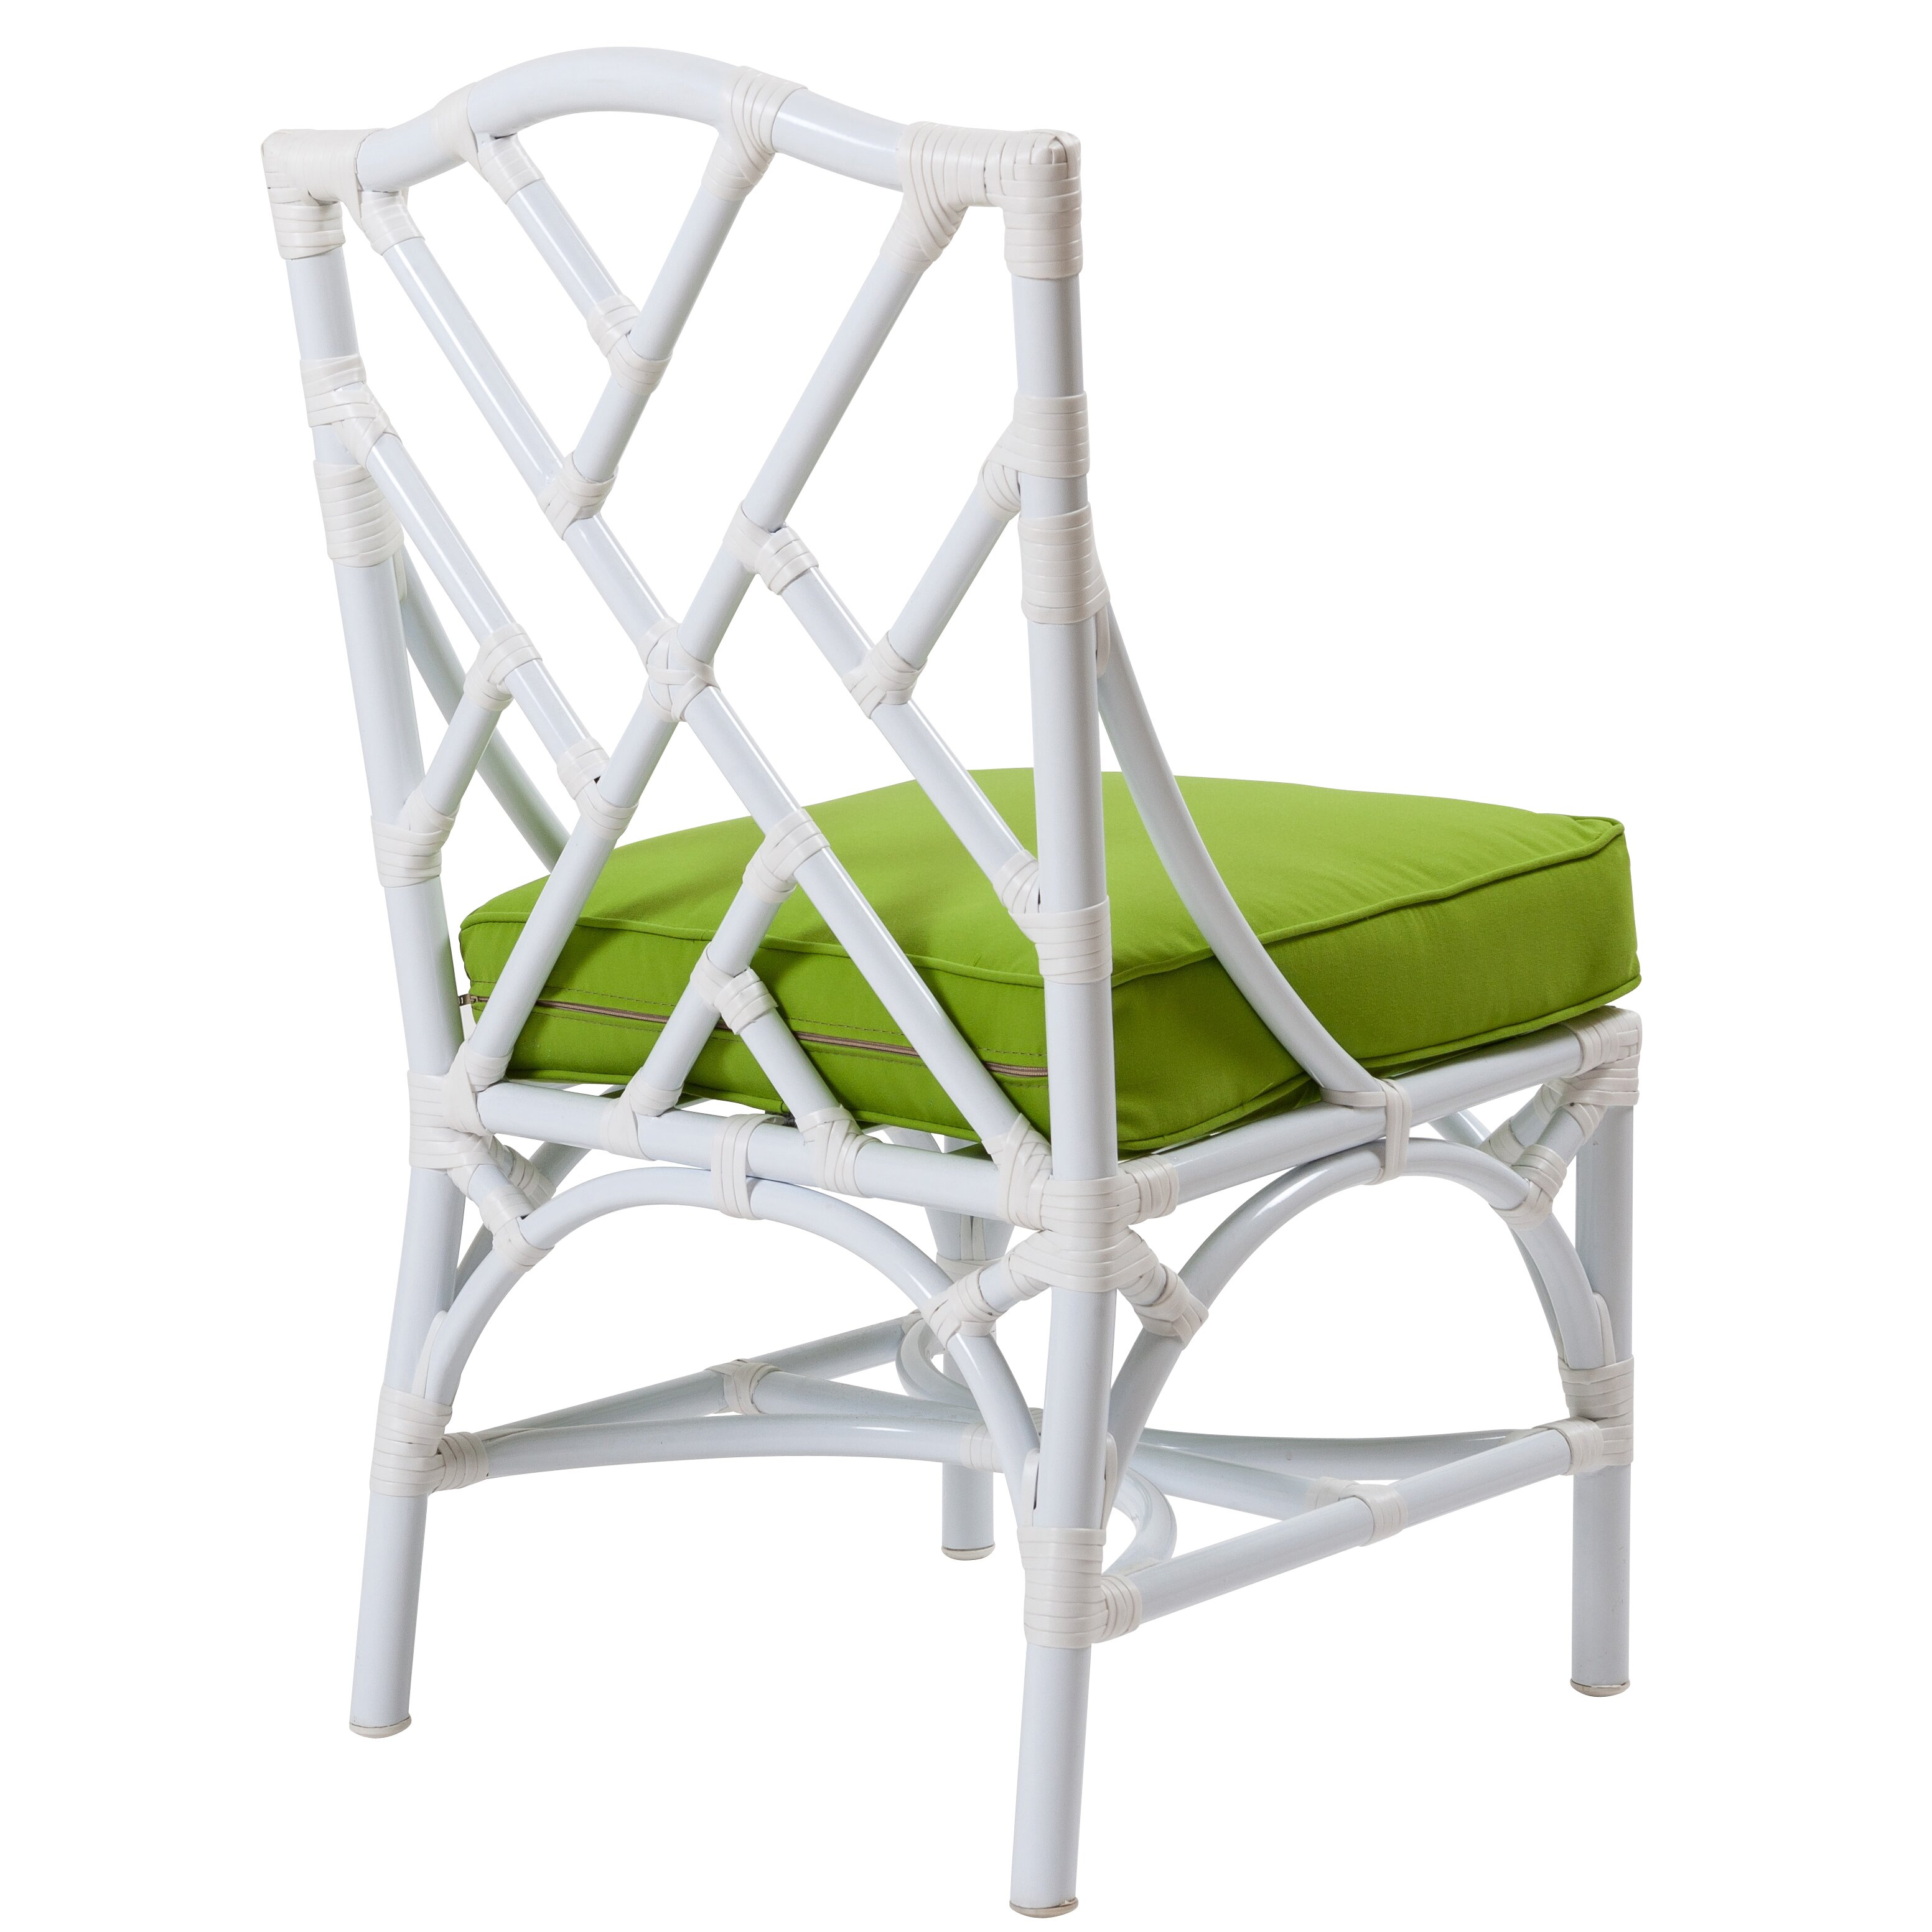 best ideas about chippendale chairs chippendale arm chair ideas  - best ideas about chippendale chairs david francis furniture chippendaledining side chair with cushion david francis